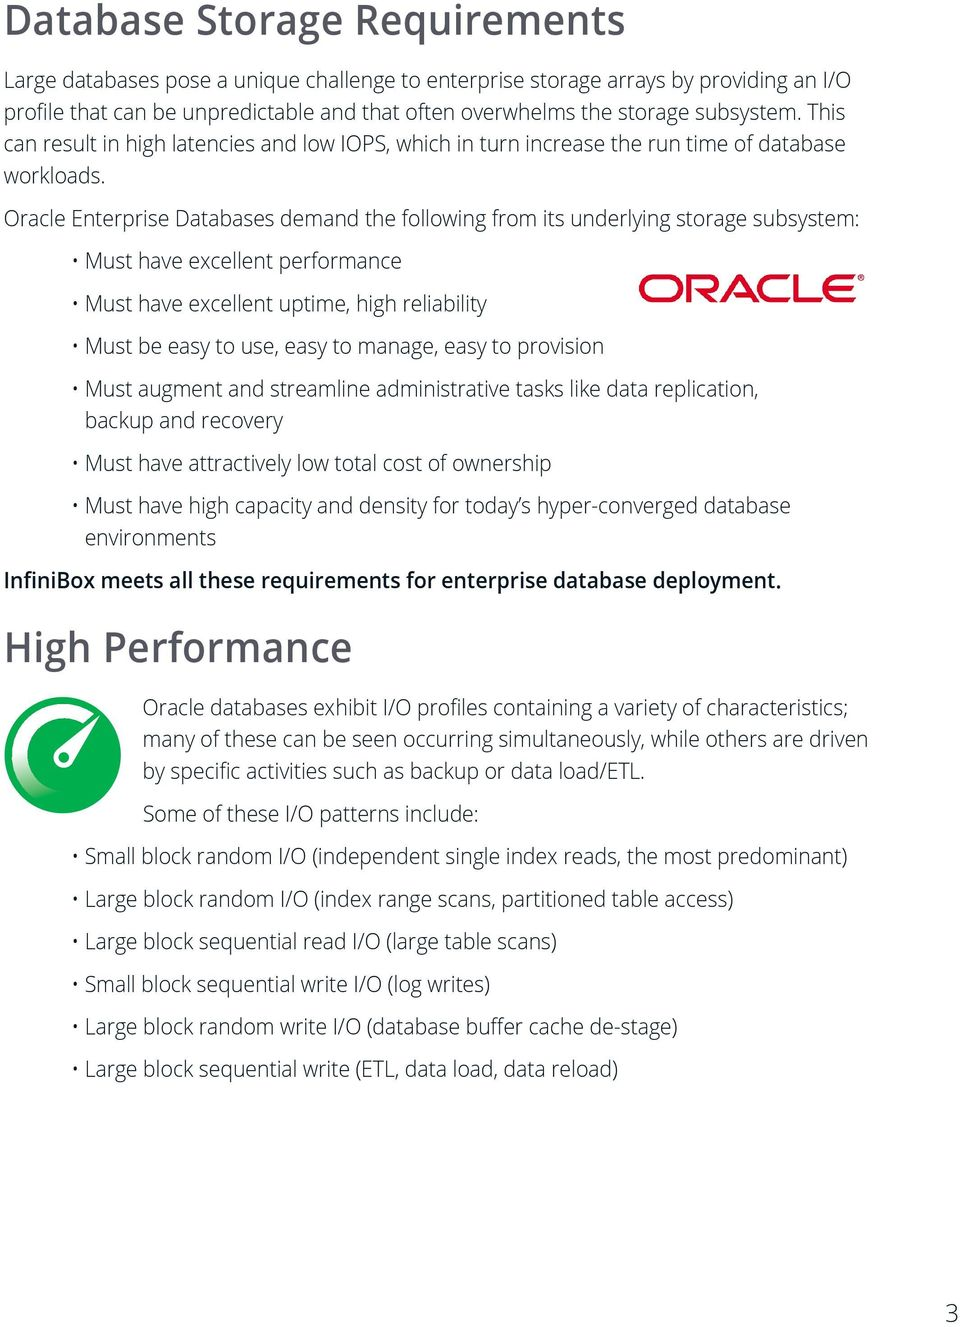 Oracle Enterprise Databases demand the following from its underlying storage subsystem: Must have excellent performance Must have excellent uptime, high reliability Must be easy to use, easy to